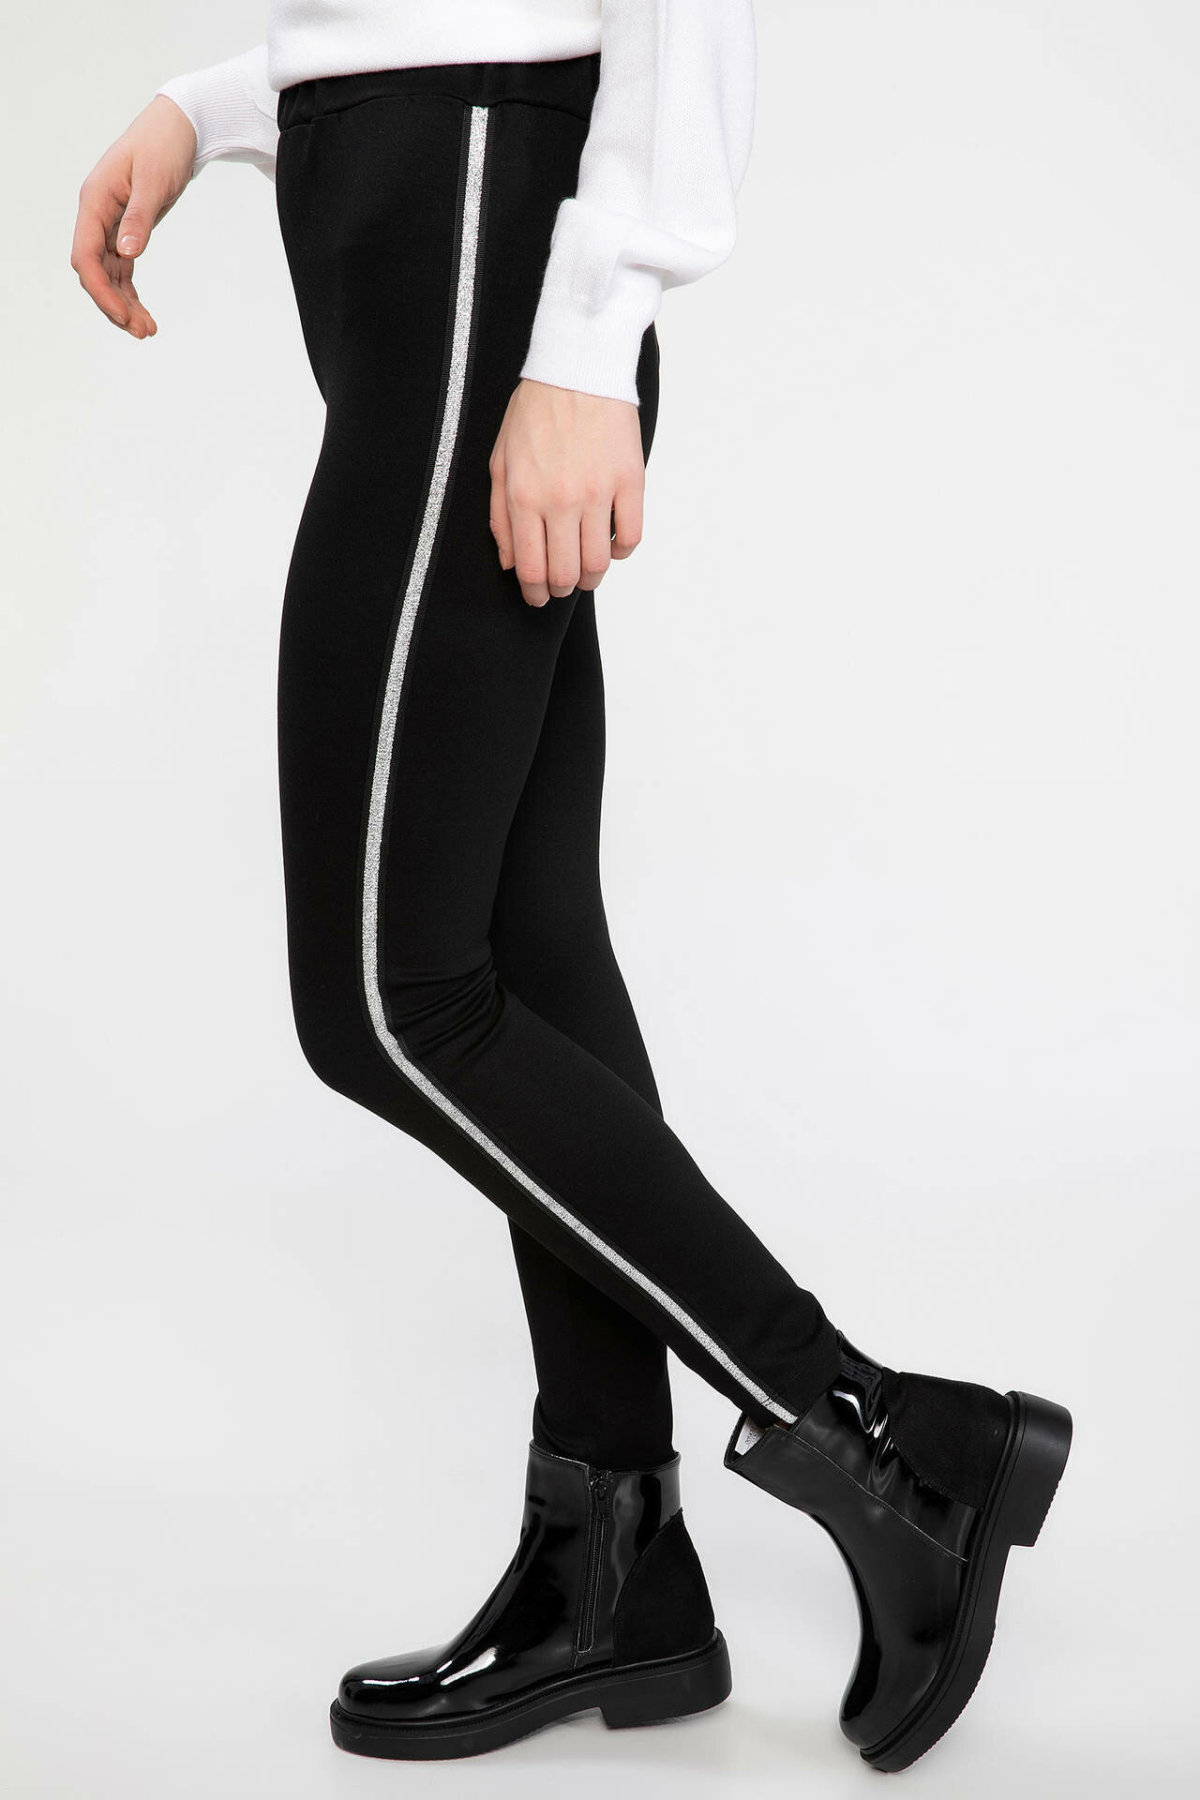 DeFacto Woman Casual Trousers Black Long Pants Women Mid-waist Adjustable Skinny Pants Fit Body Bottoms-K2899AZ18AU